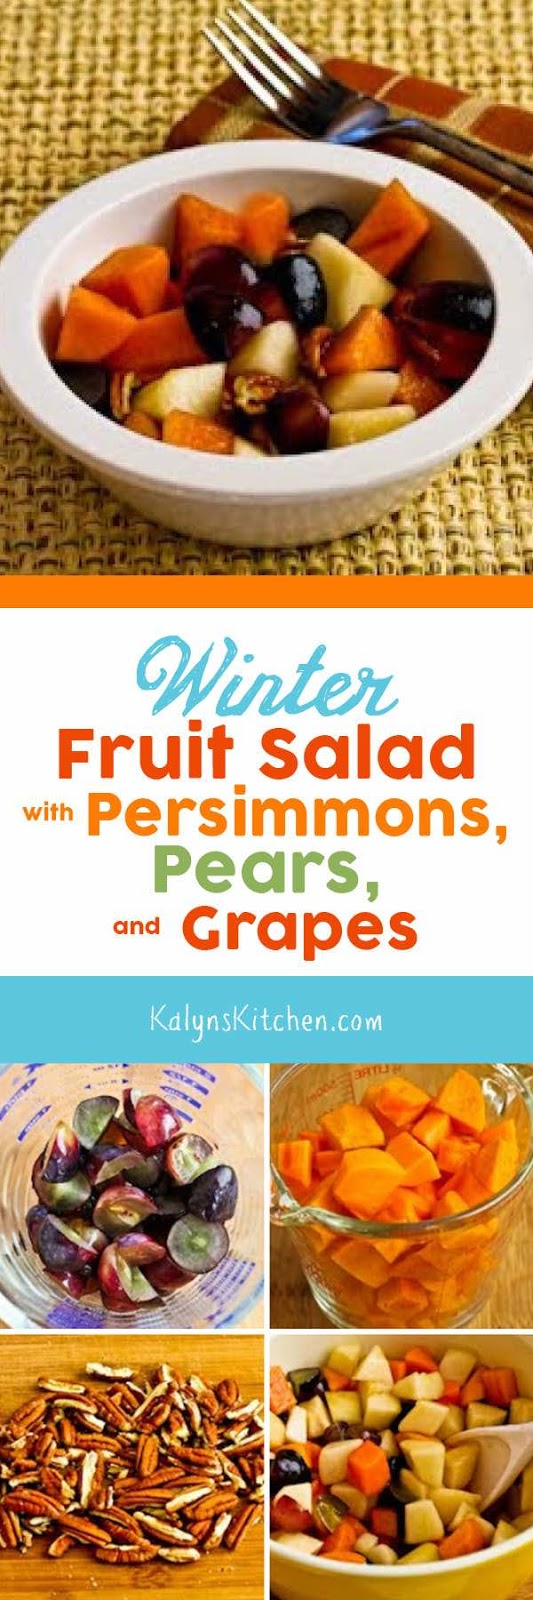 Winter Fruit Salad with Persimmons, Pears, Grapes, Pecans, and Agave ...